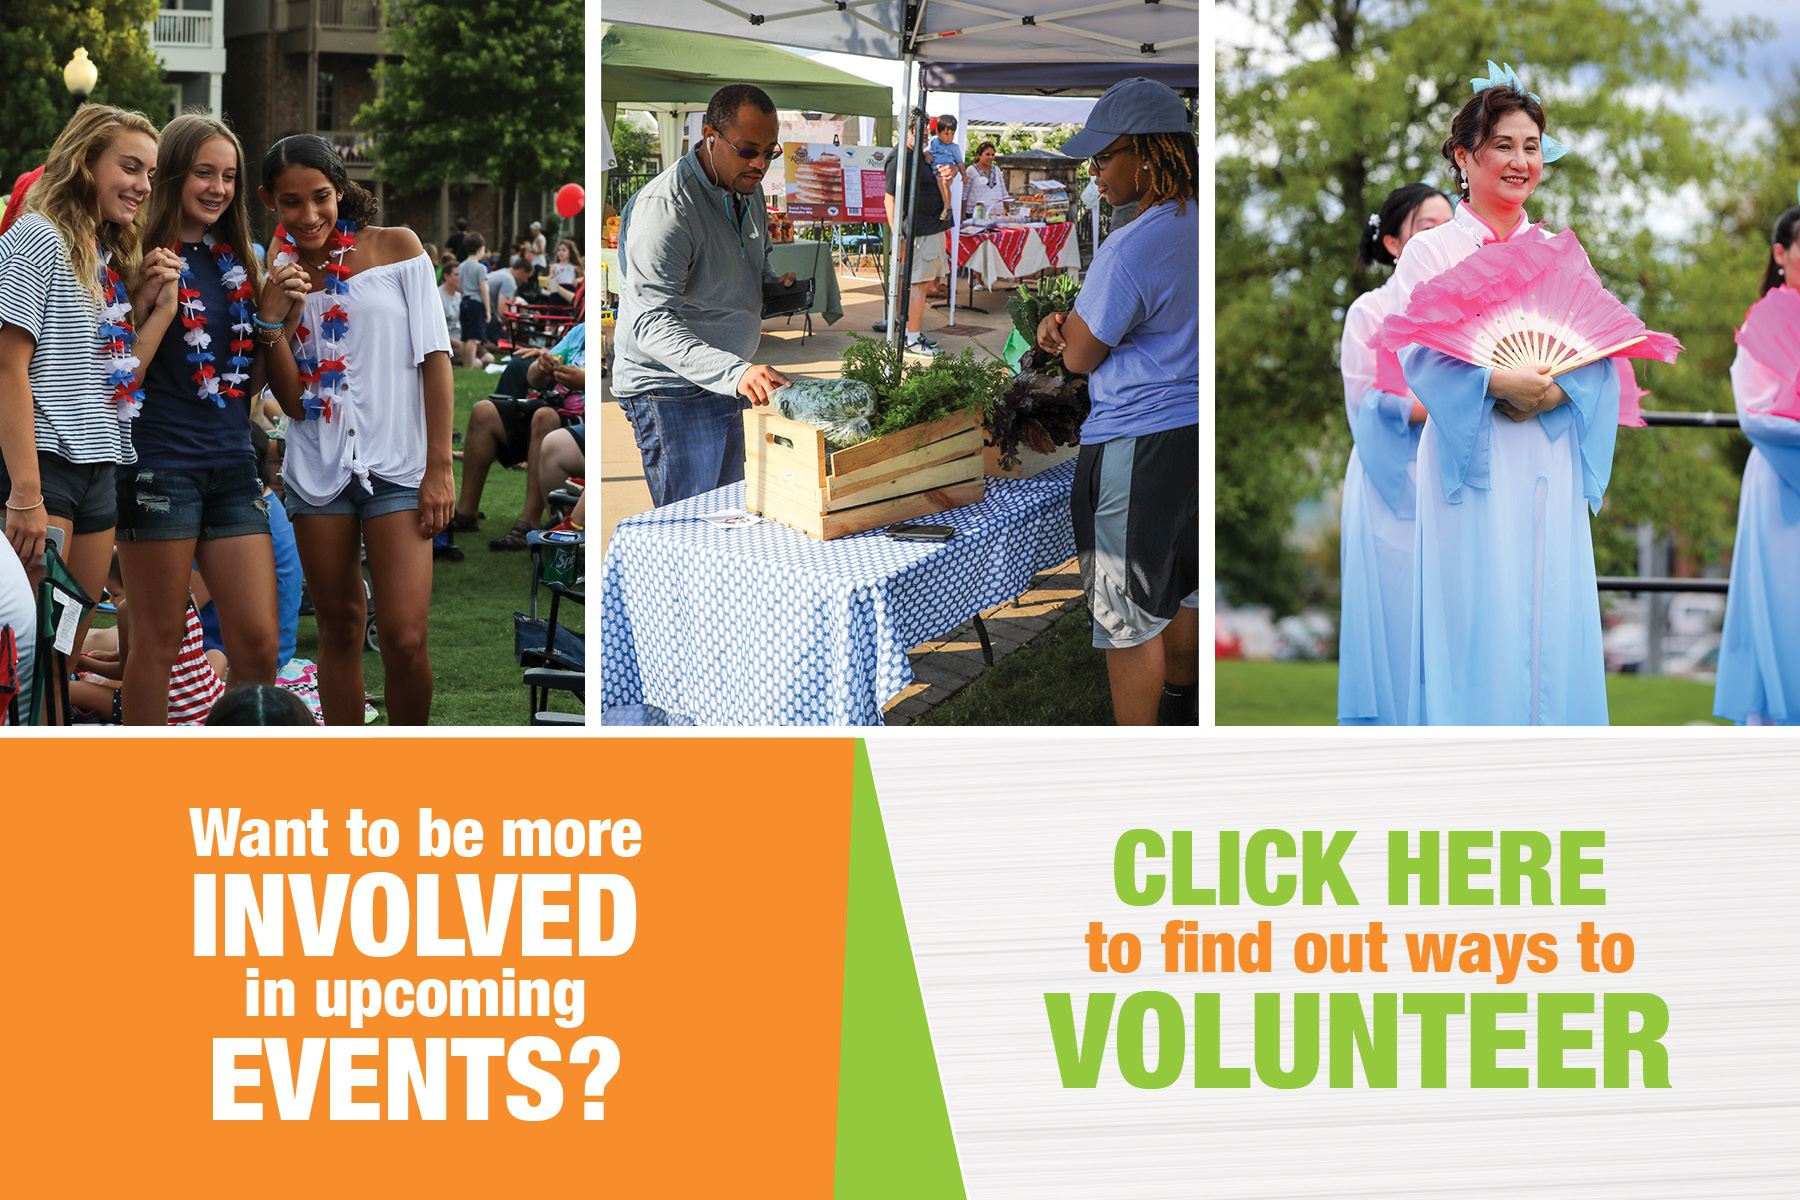 VolunteerGraphic_Norcrosswebsite